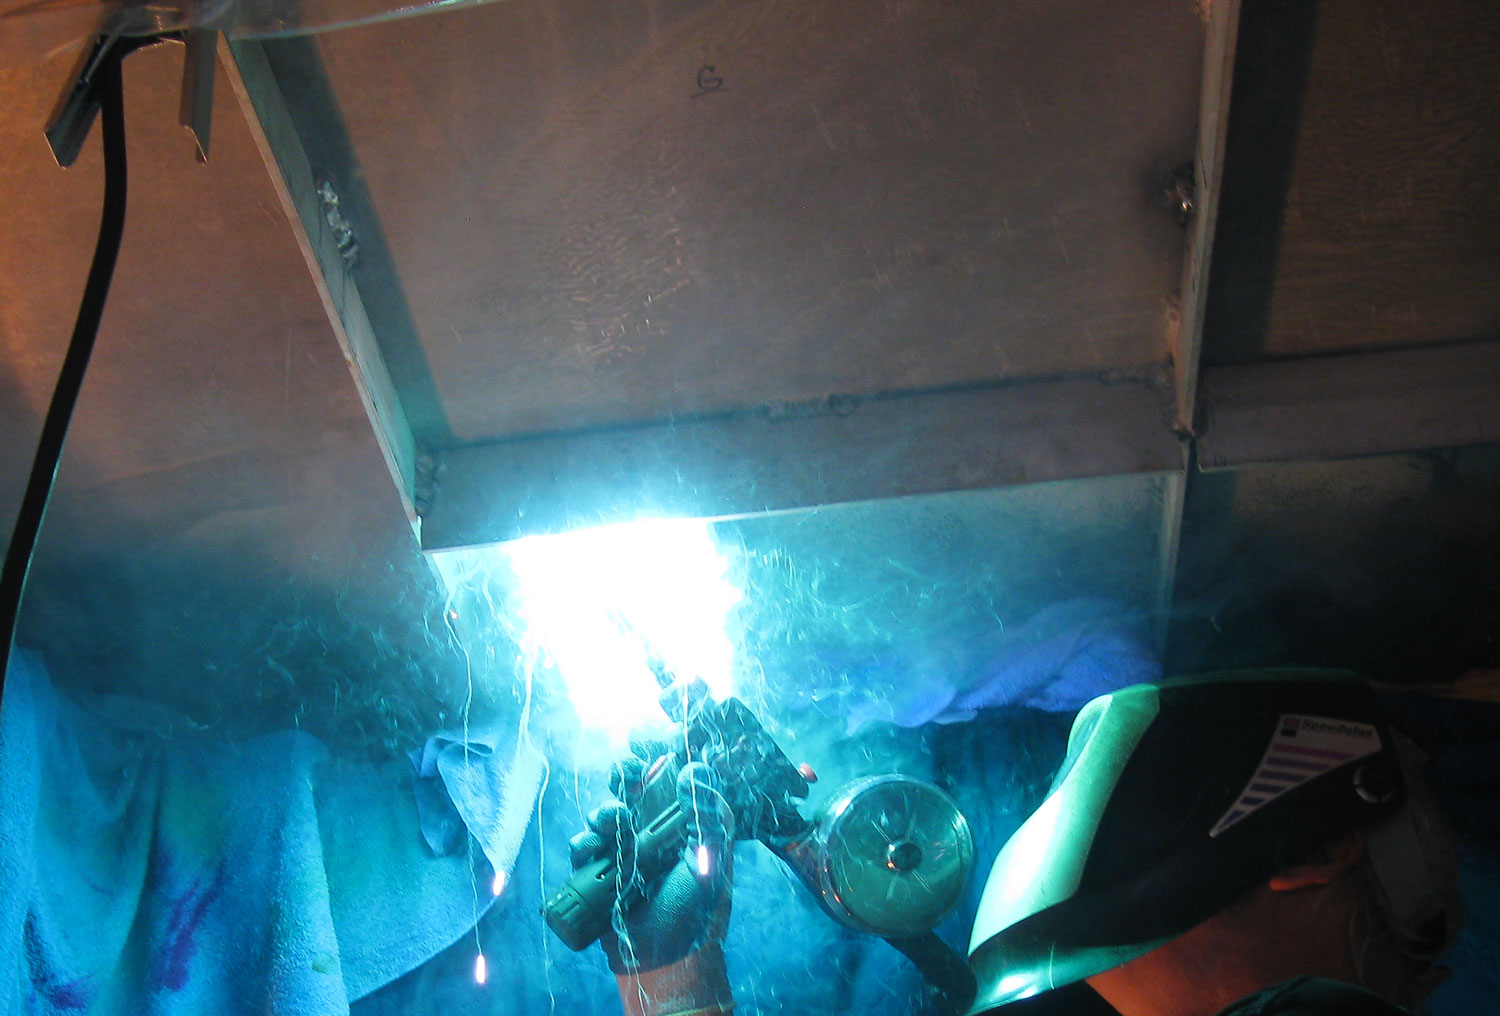 Welding reinforcing plates and angles under the deck supporting the anchor winch.